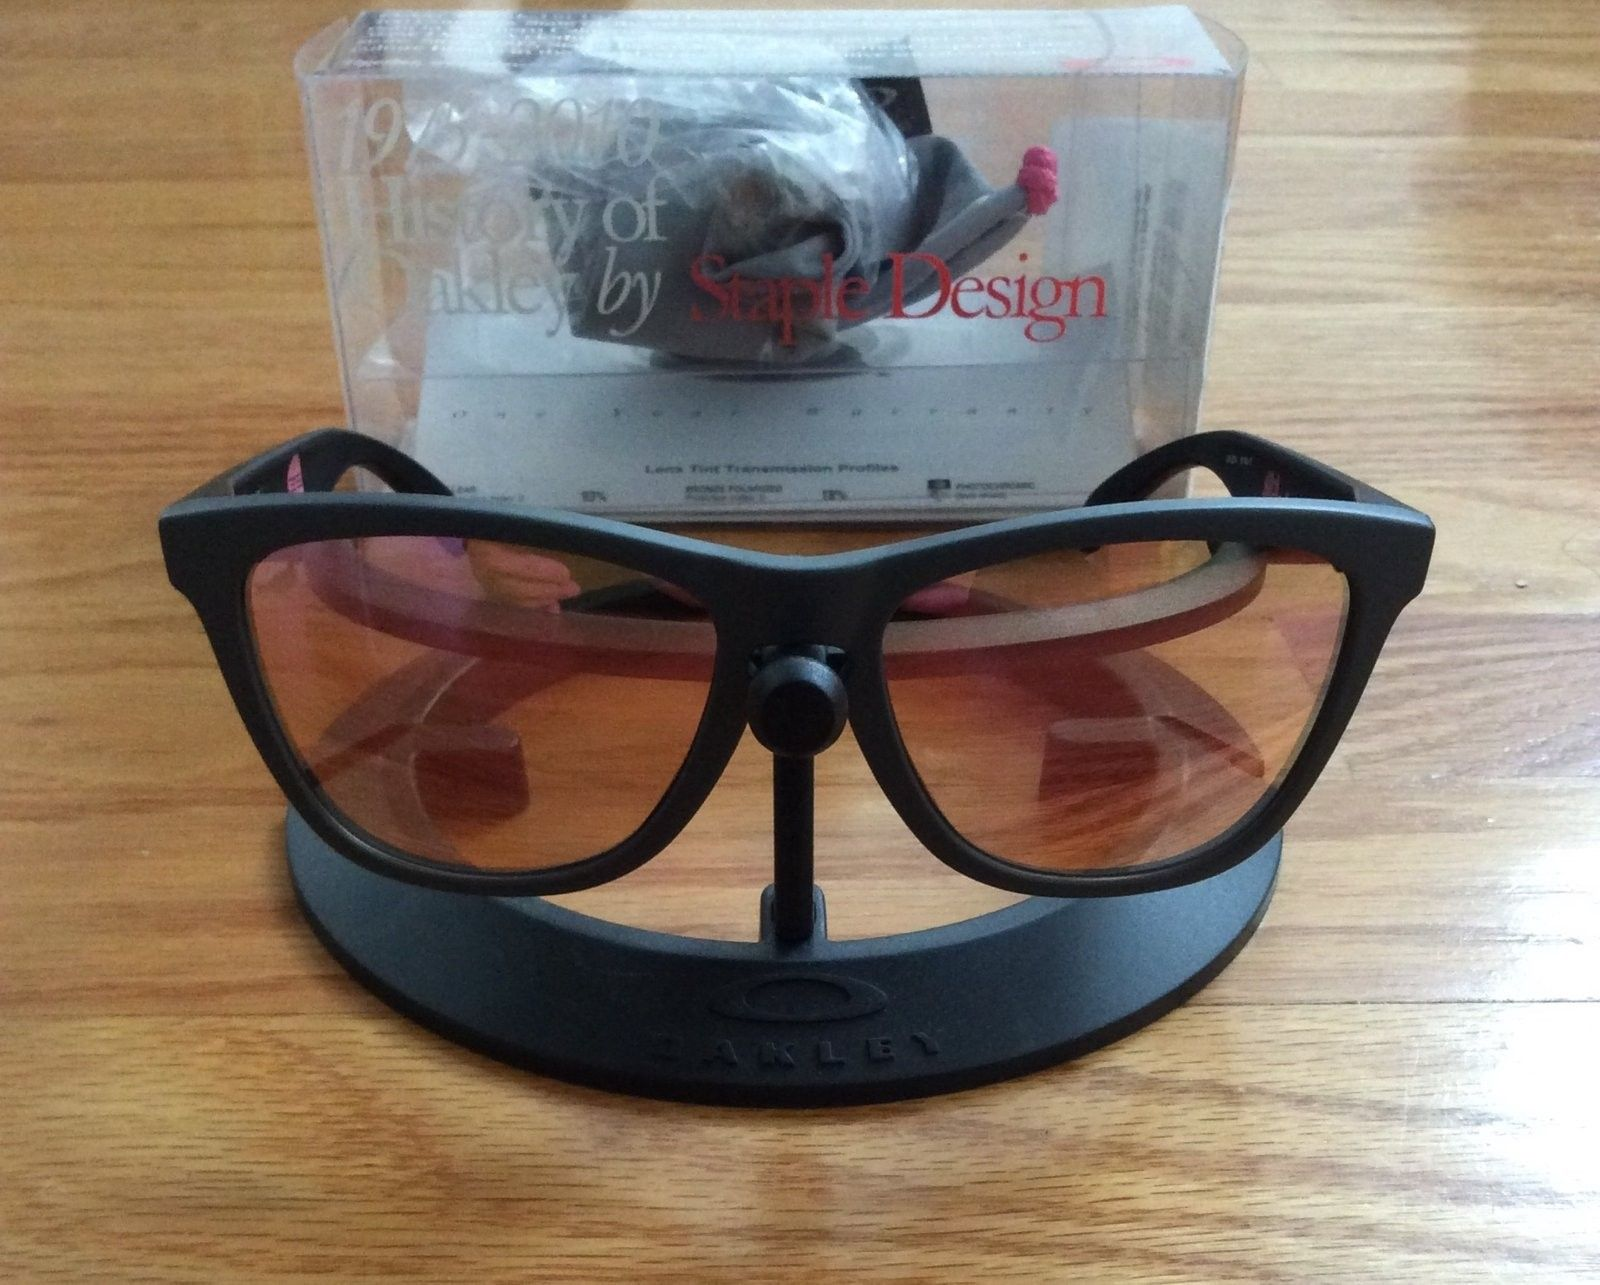 BNIB Staple Design Dove Grey Pink Frogskins - image.jpeg